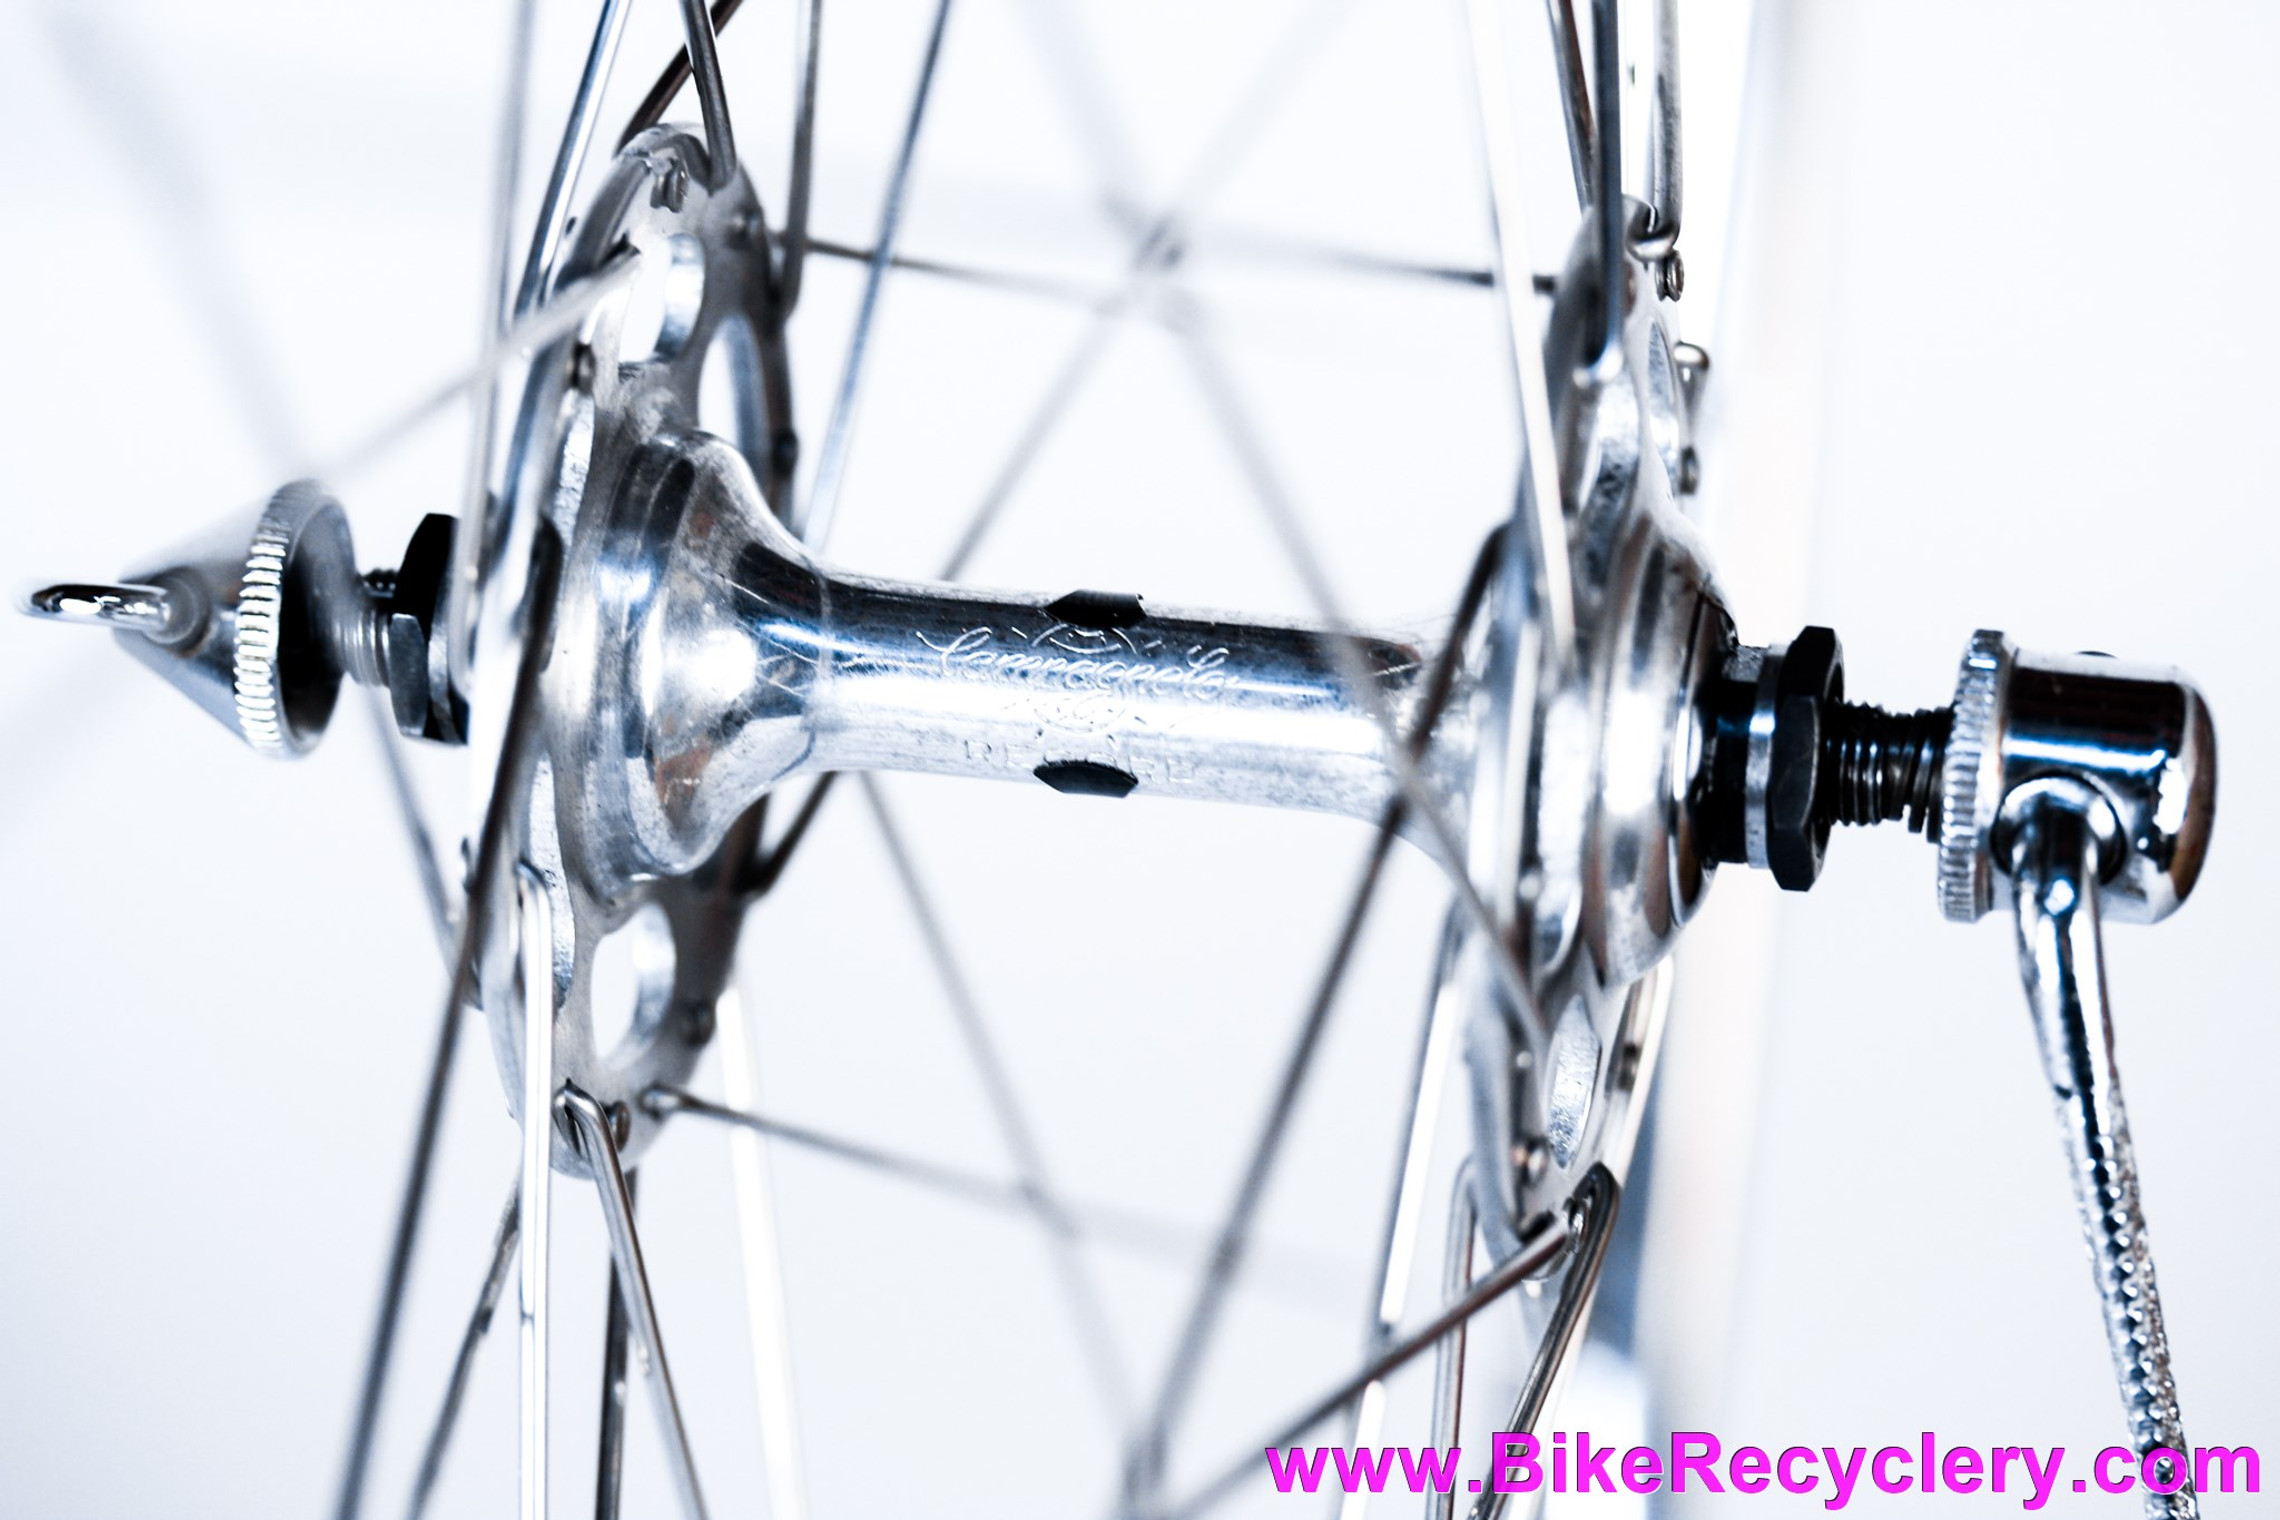 NOS 36H Vintage 700c Wheelset: Campagnolo Nuovo Record High Flange Hubs & H+Son TB14 Polished Box Section Rims: 120mm Spacing - Flat Blade QR Skewers - Clincher